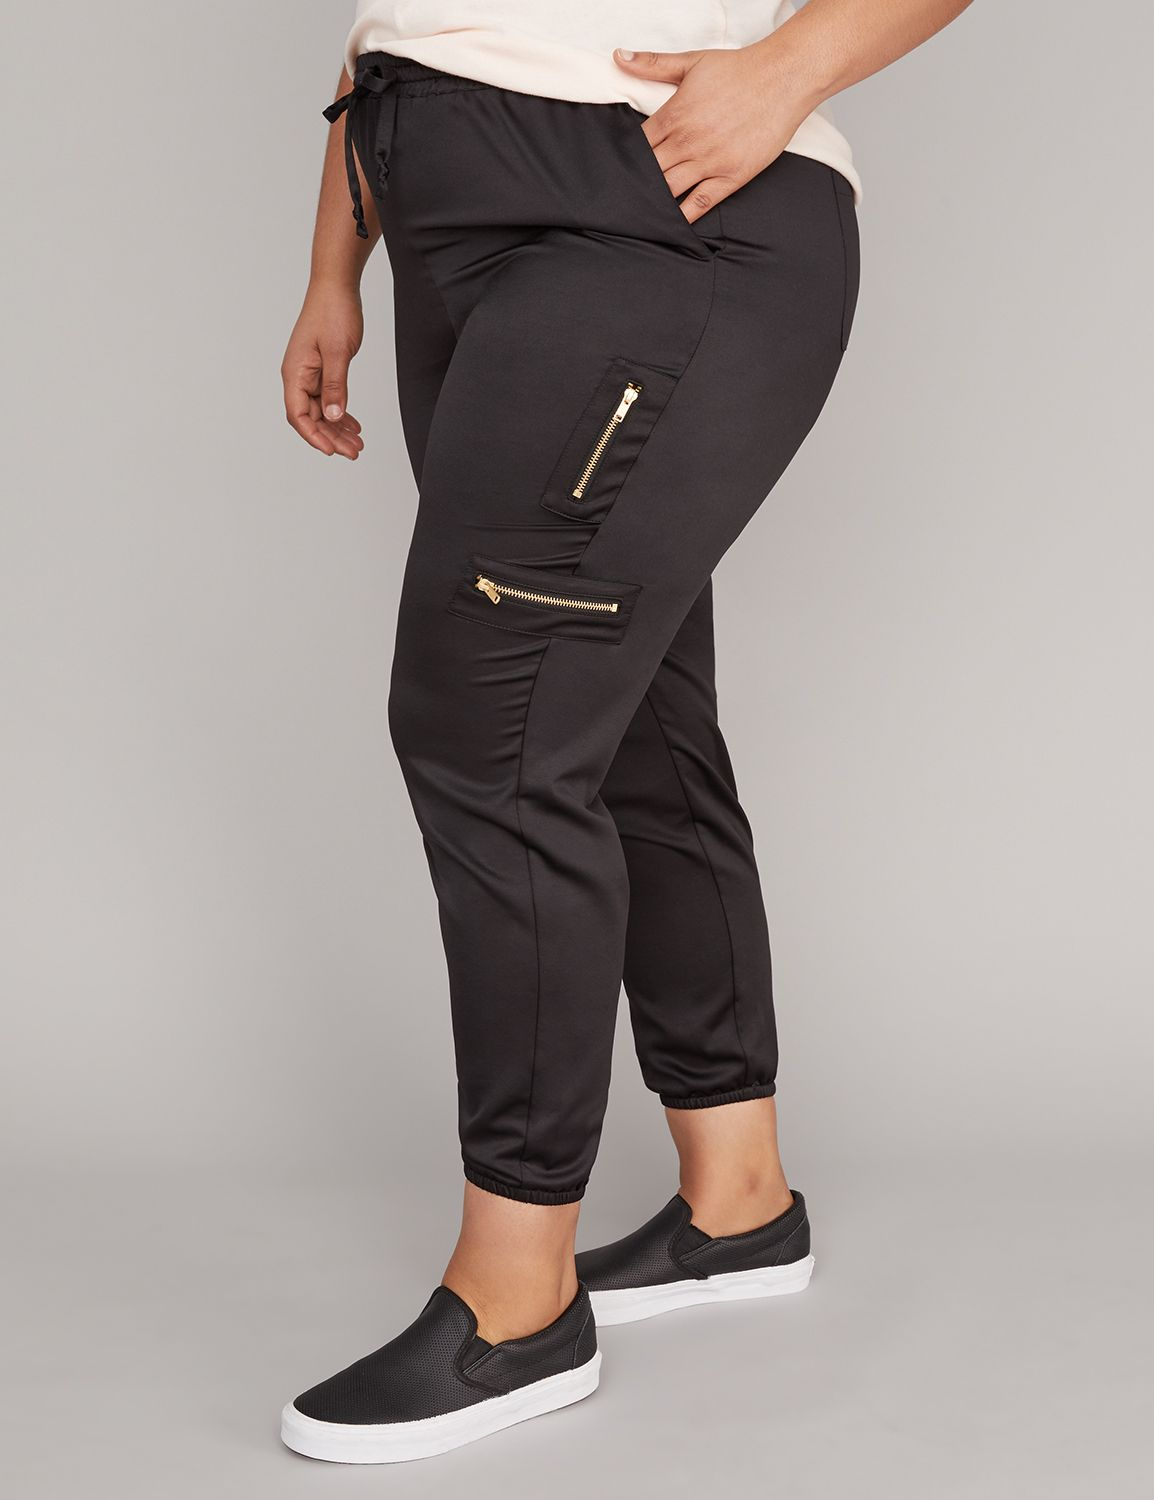 Lane Bryant Womens Zipper Detail Satin Active Cargo Pants 14/16 Pitch Black